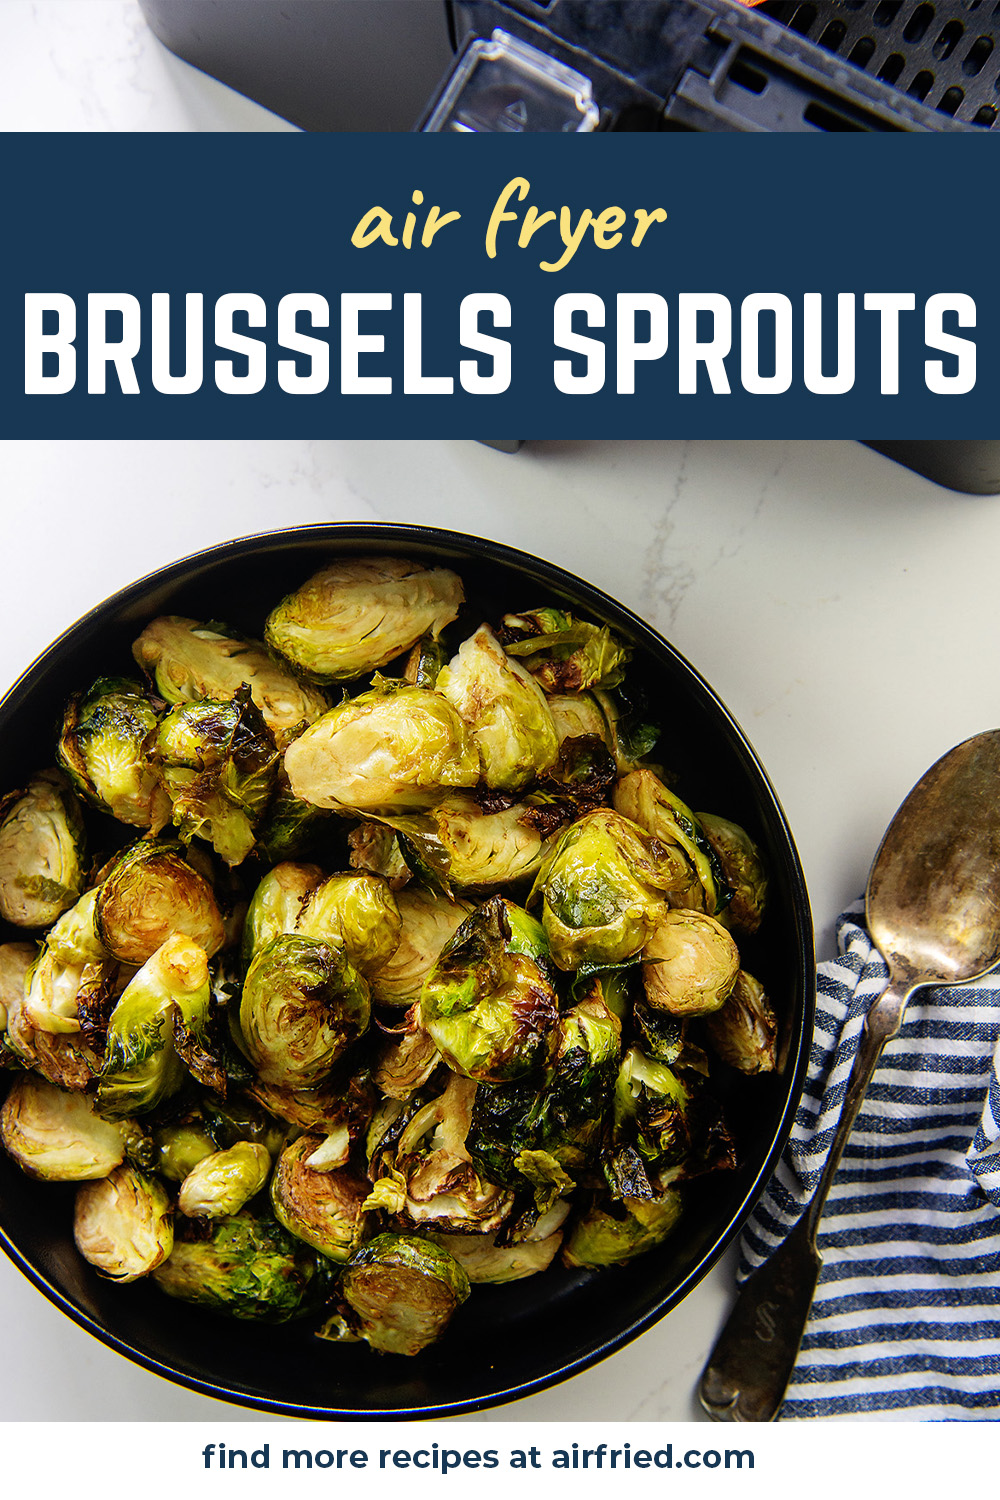 Overhead view of brussels sprouts on a small black plate next to a spoon